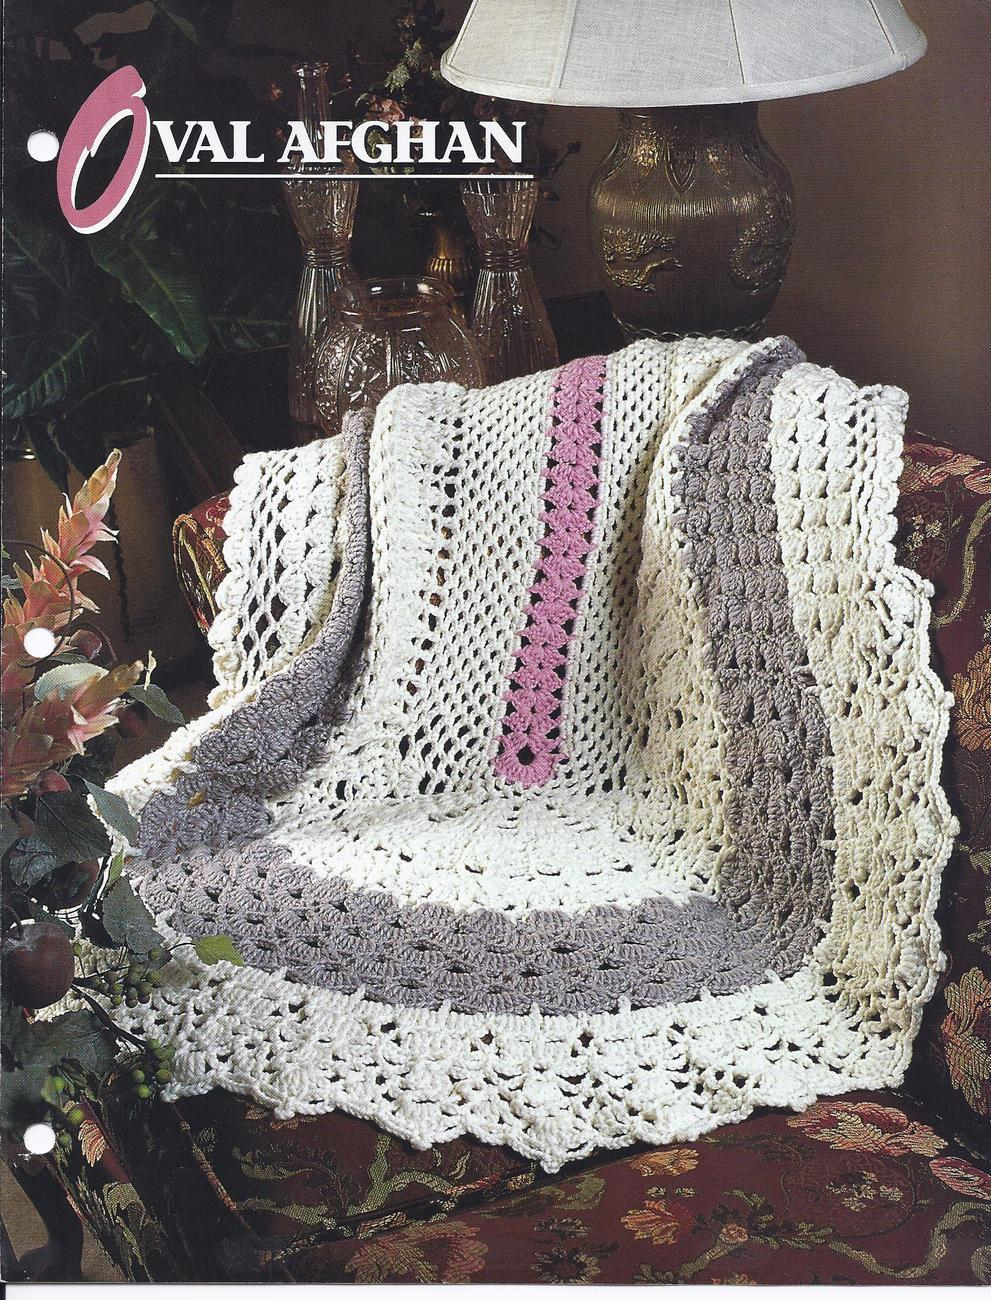 Crochet Afghan Patterns Quilt : RARE~Oval Afghan Crochet Pattern~Annies Quilt & Afghan ...